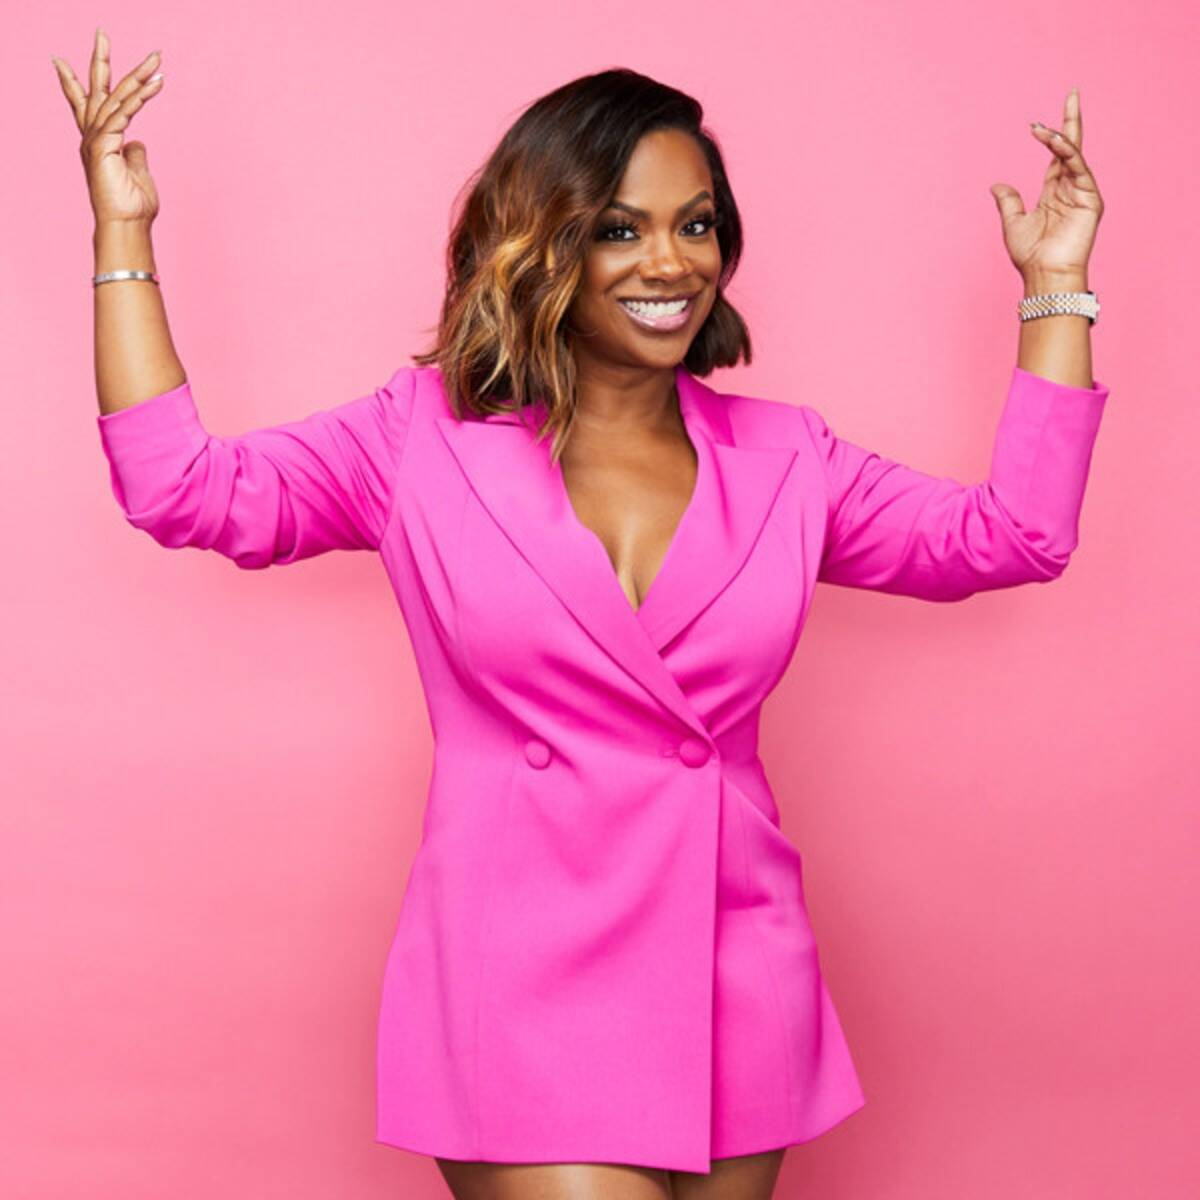 Kandi Burruss Is Celebrating One Year Of Old Lady Gang At Camp Creek